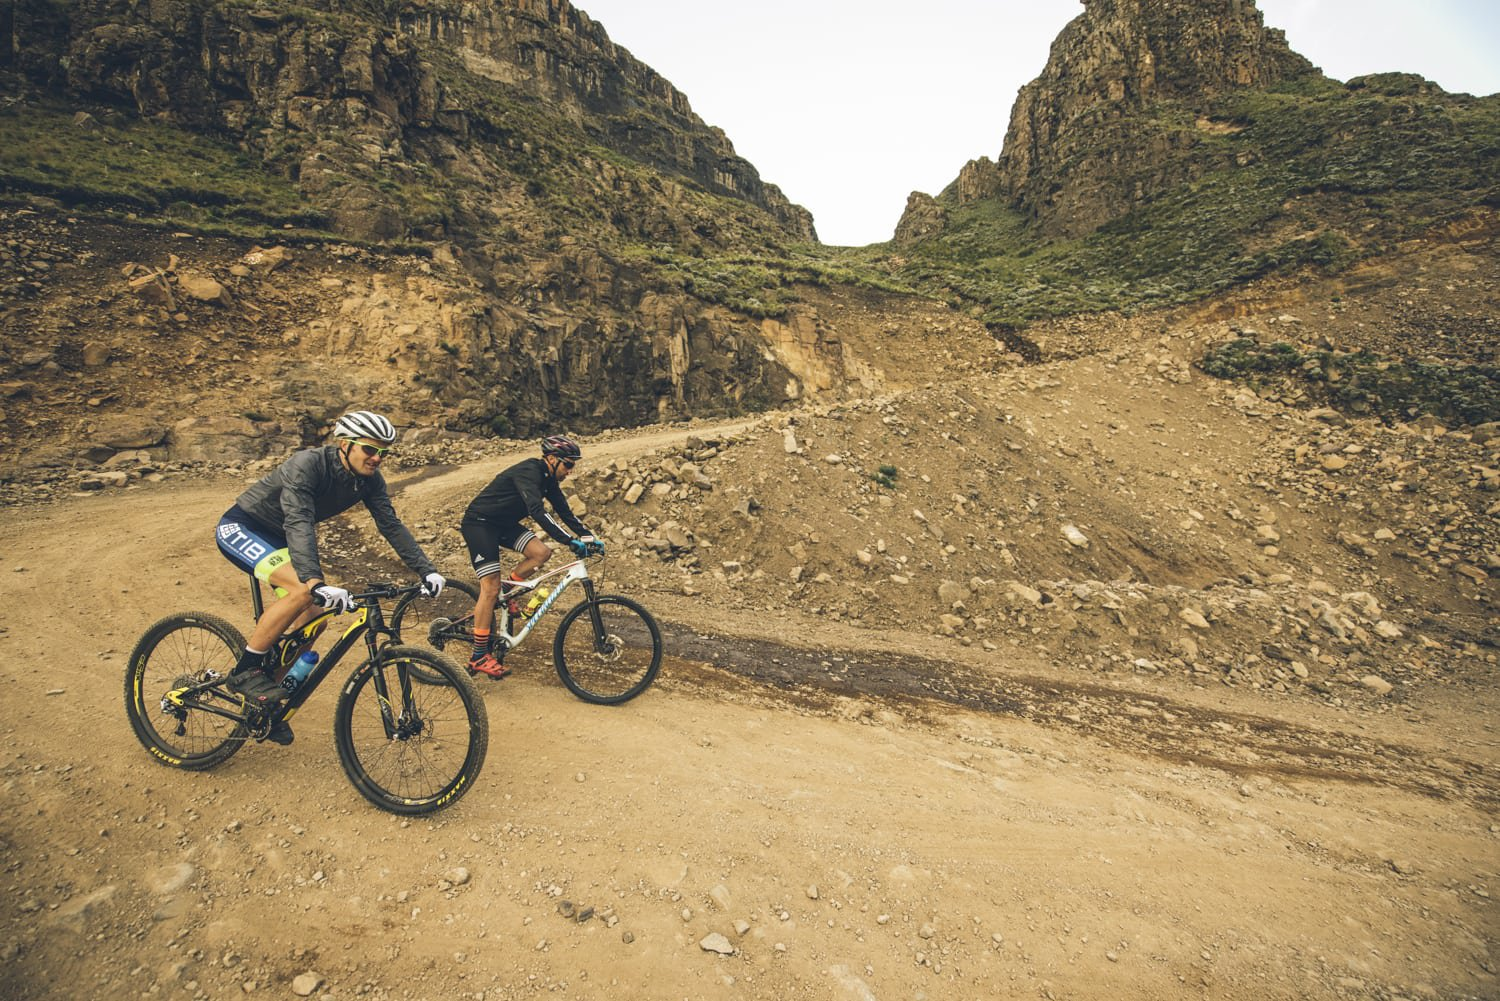 sani-pass-desmond-louw-bicycling-magazine-wowrides-0098